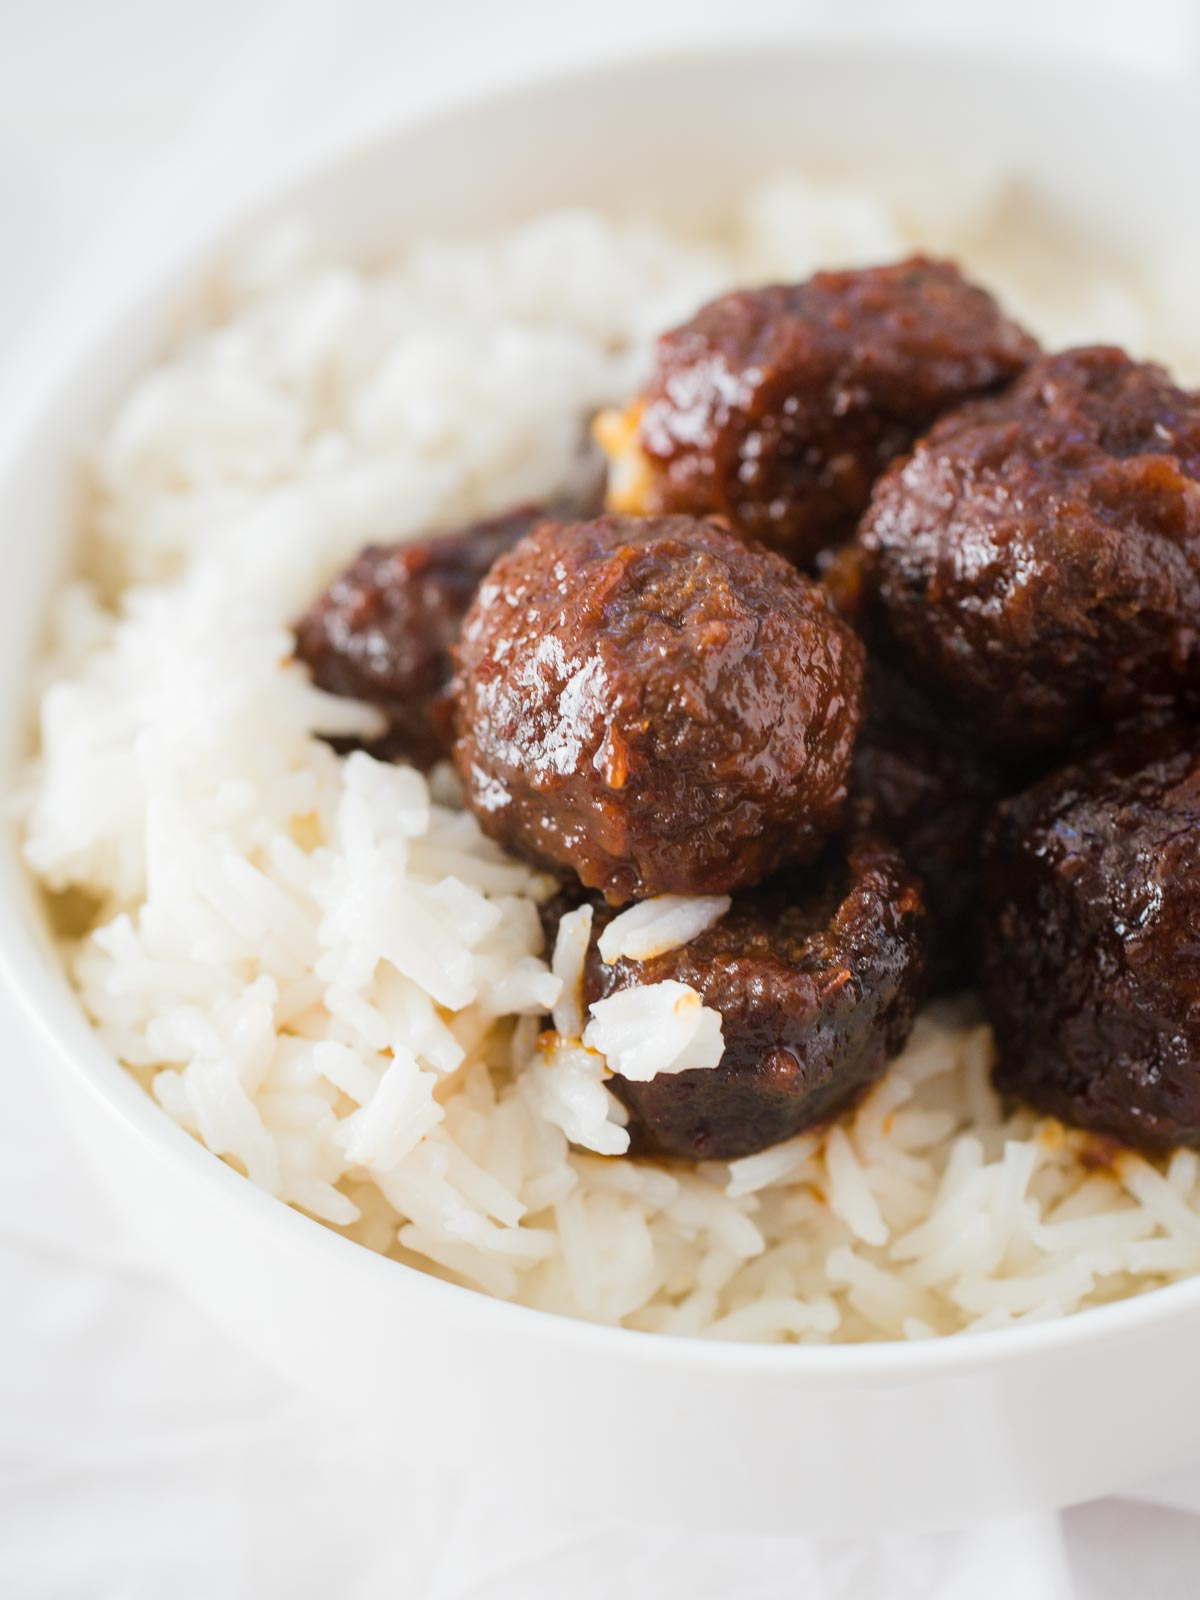 meatballs over rice in a white bowl